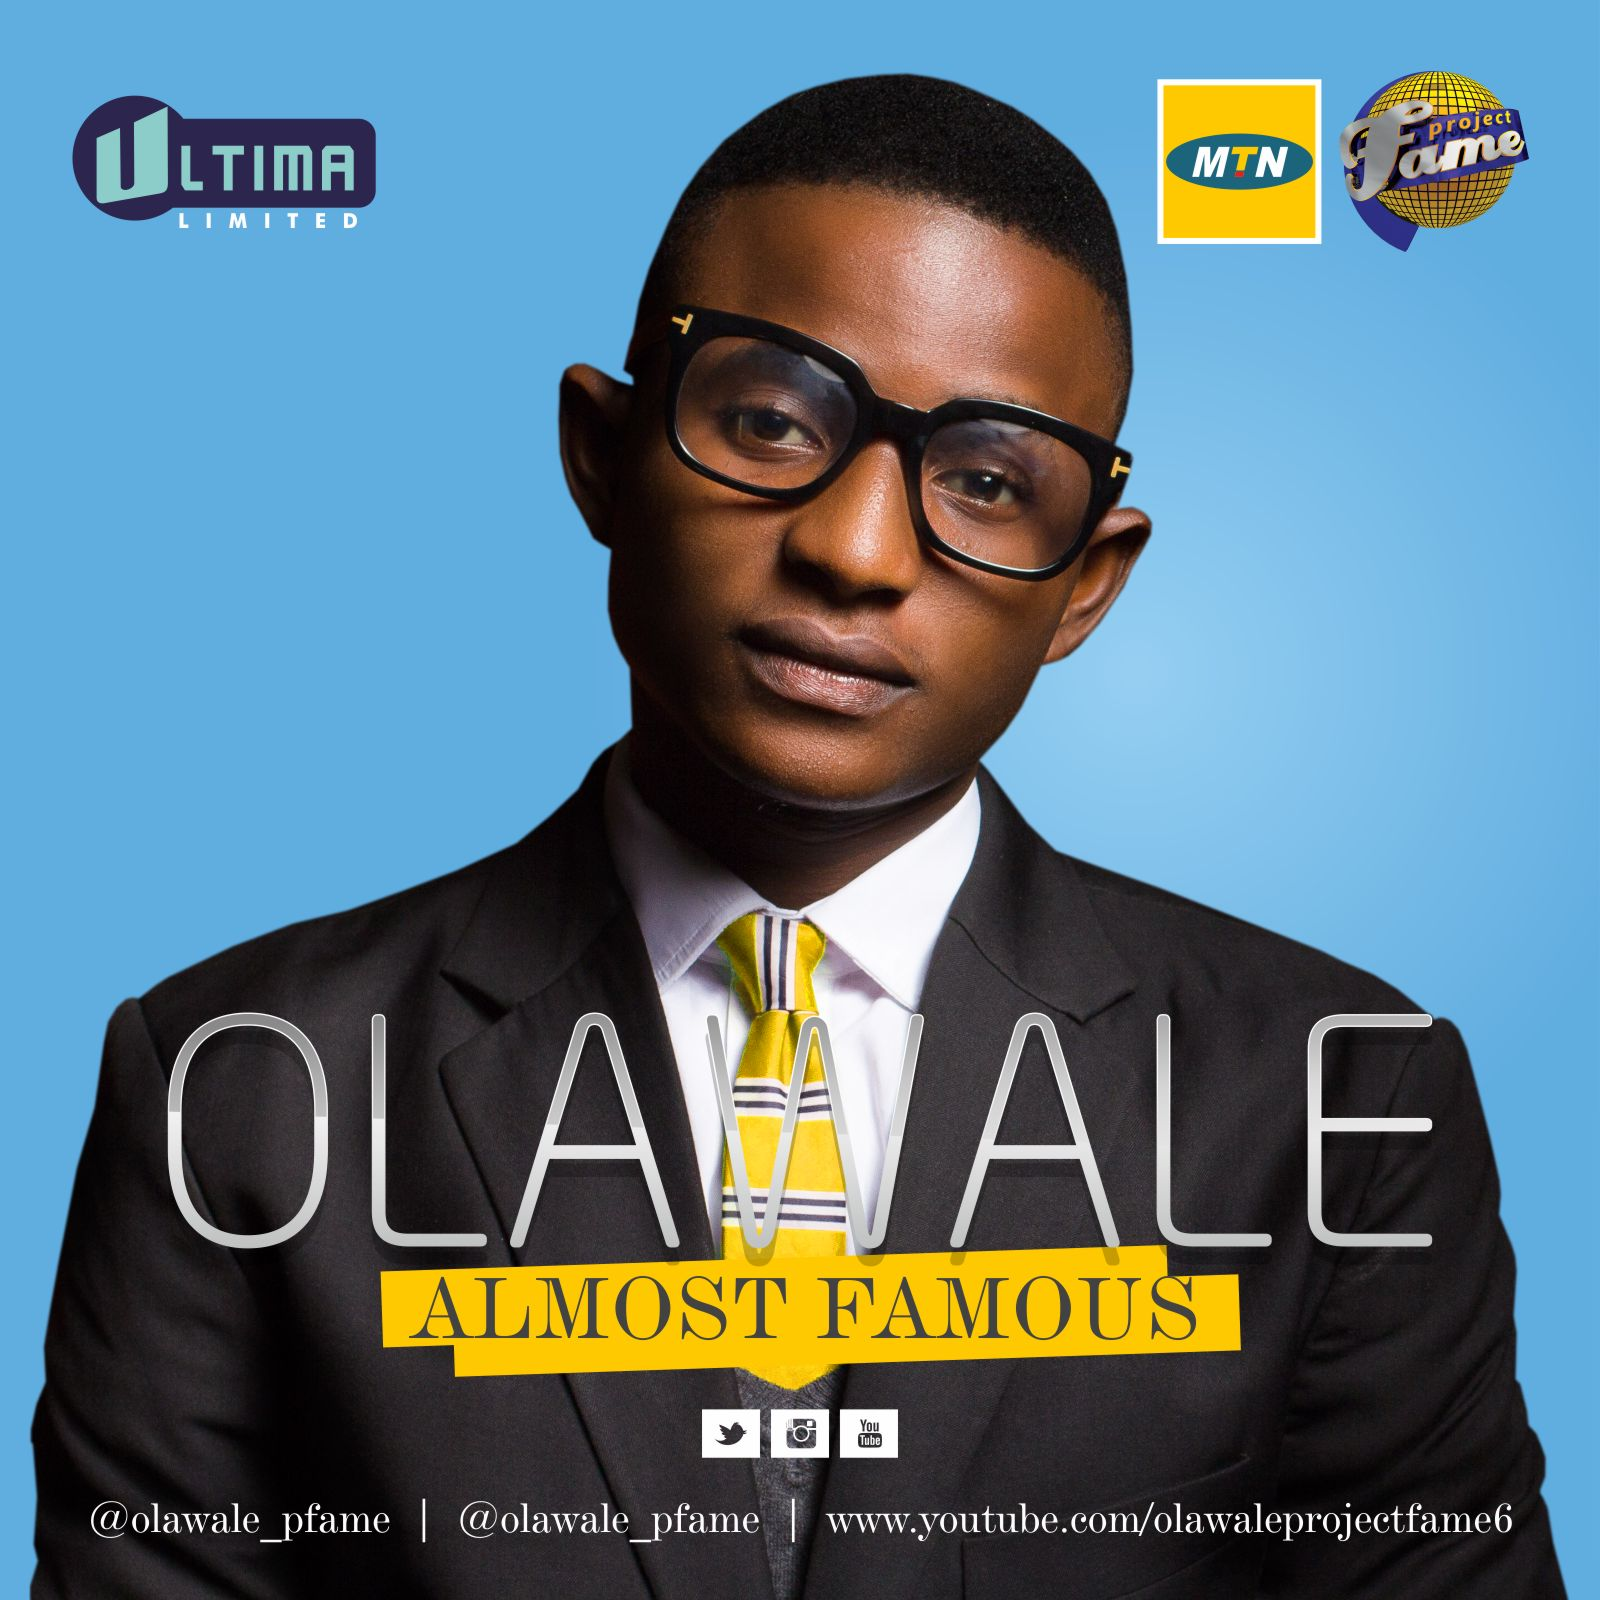 ALMOST FAMOUS: Olawale